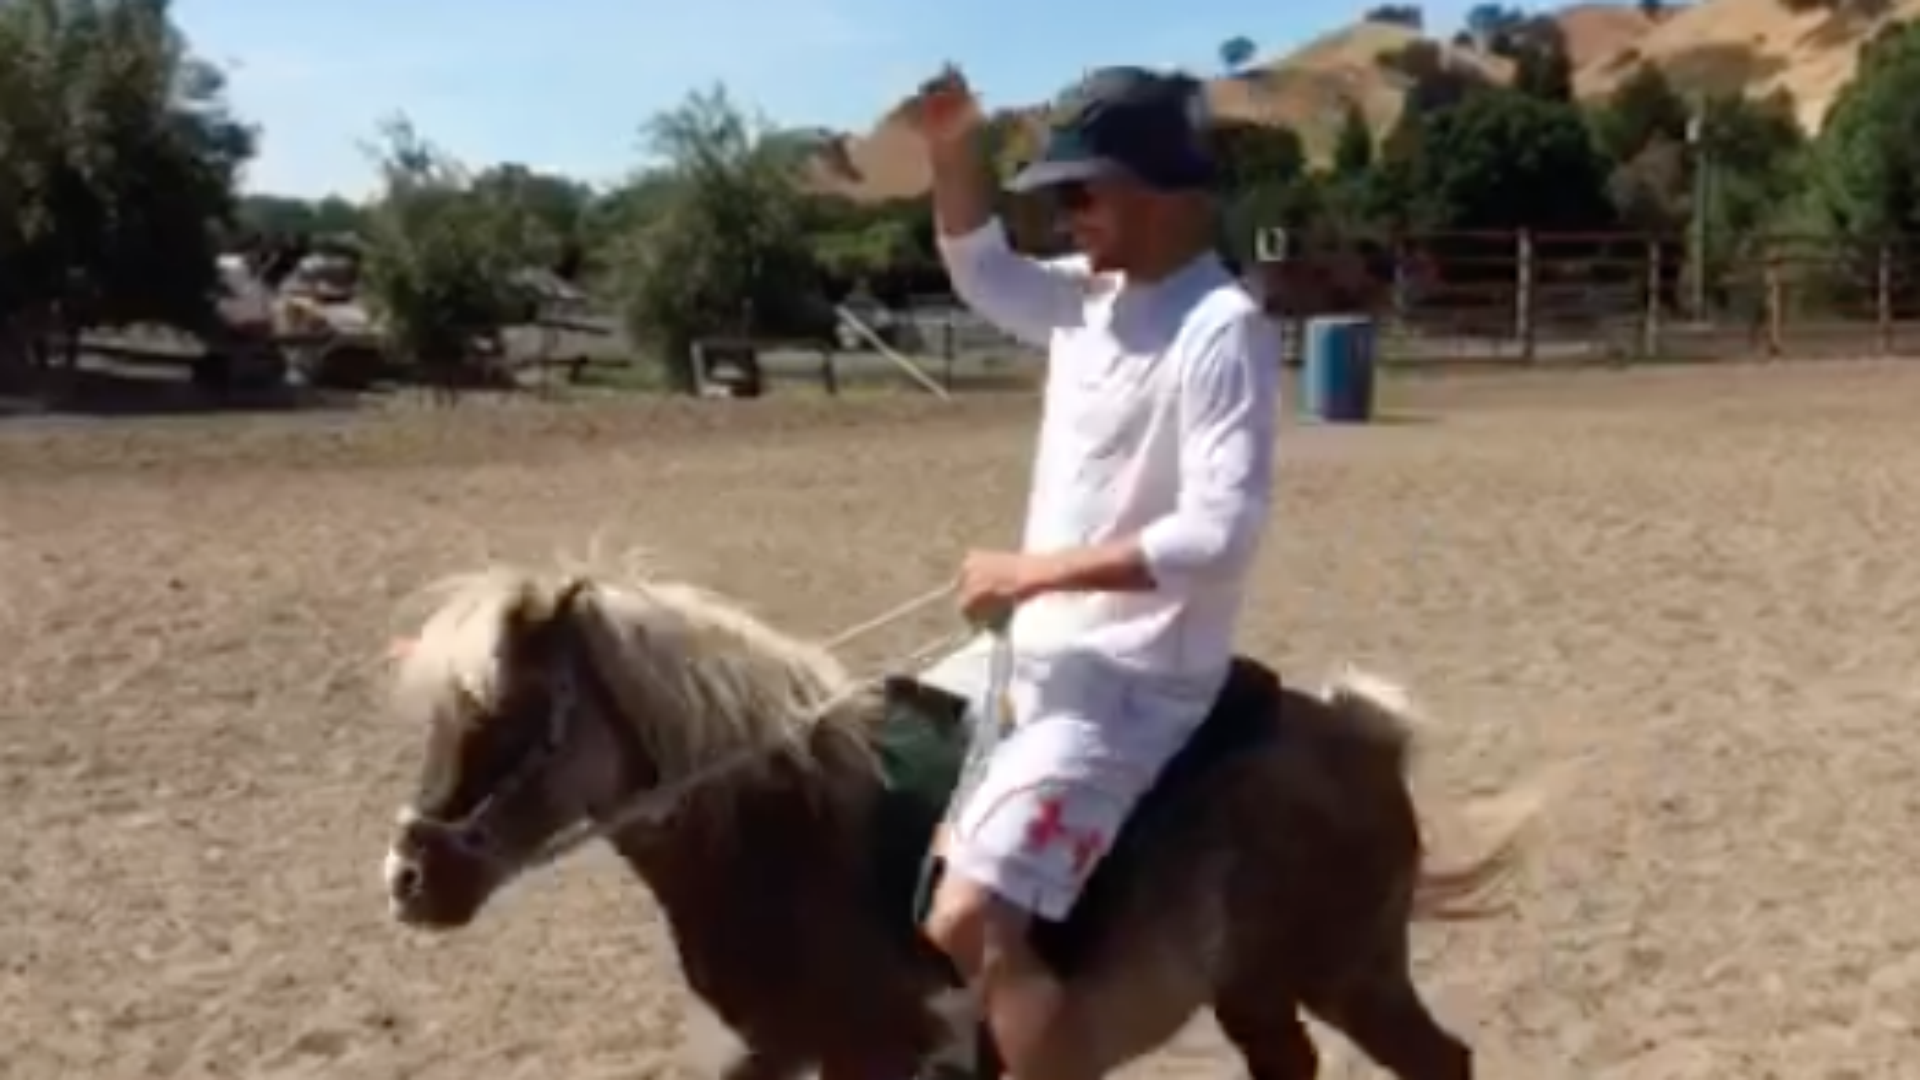 Steph Curry preps for NBA Finals with a mini horse